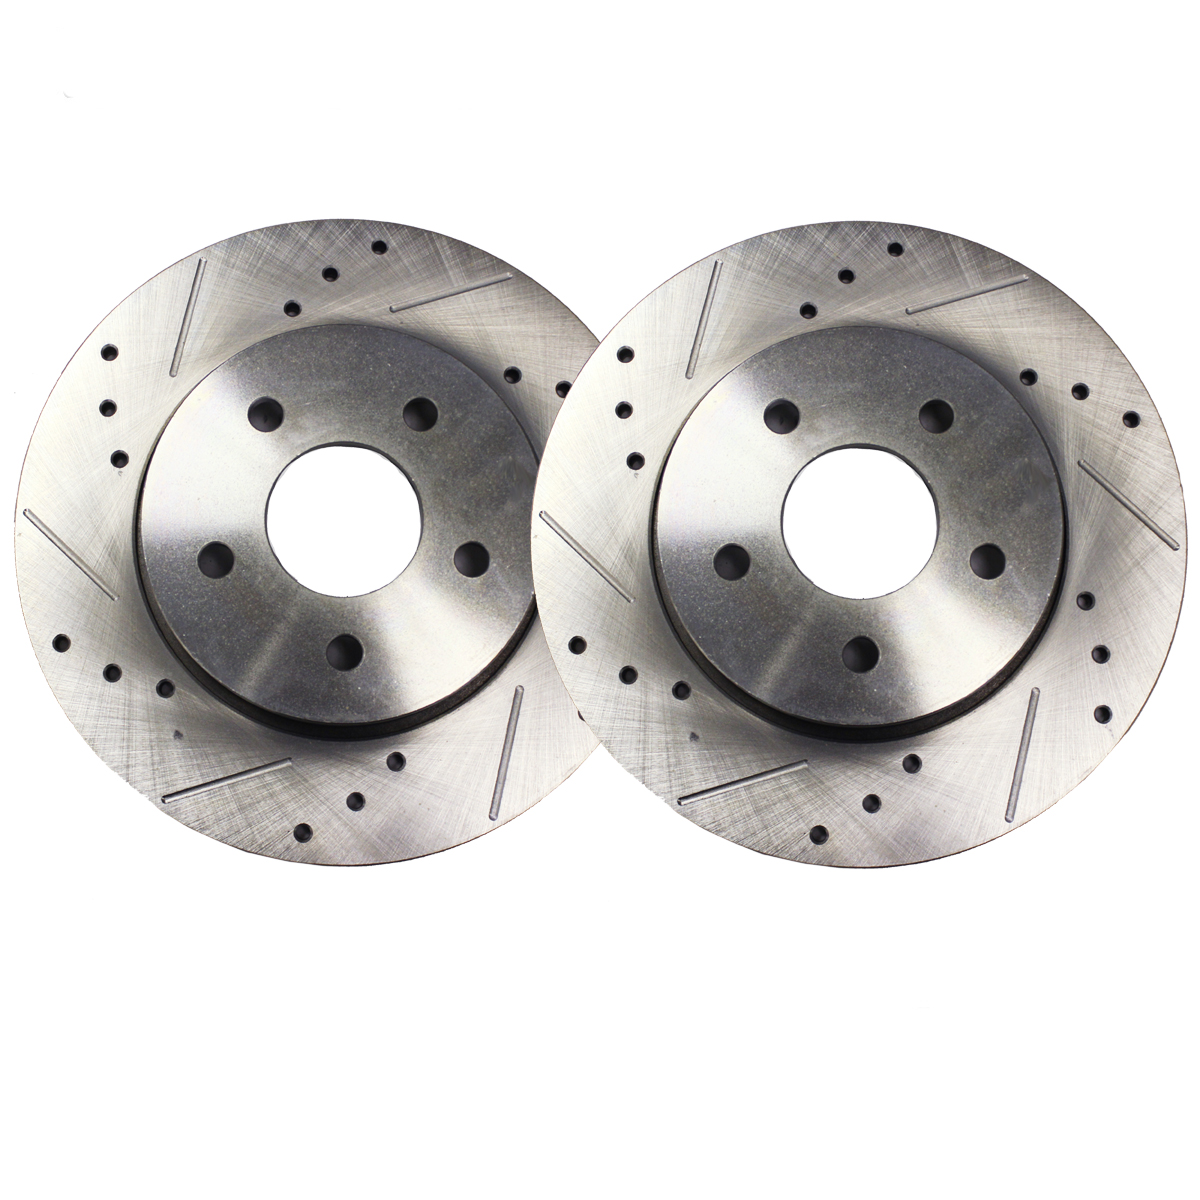 Front Drilled and Slotted Brake Rotors-Chrysler/Dodge/Jeep/Mitsubishi